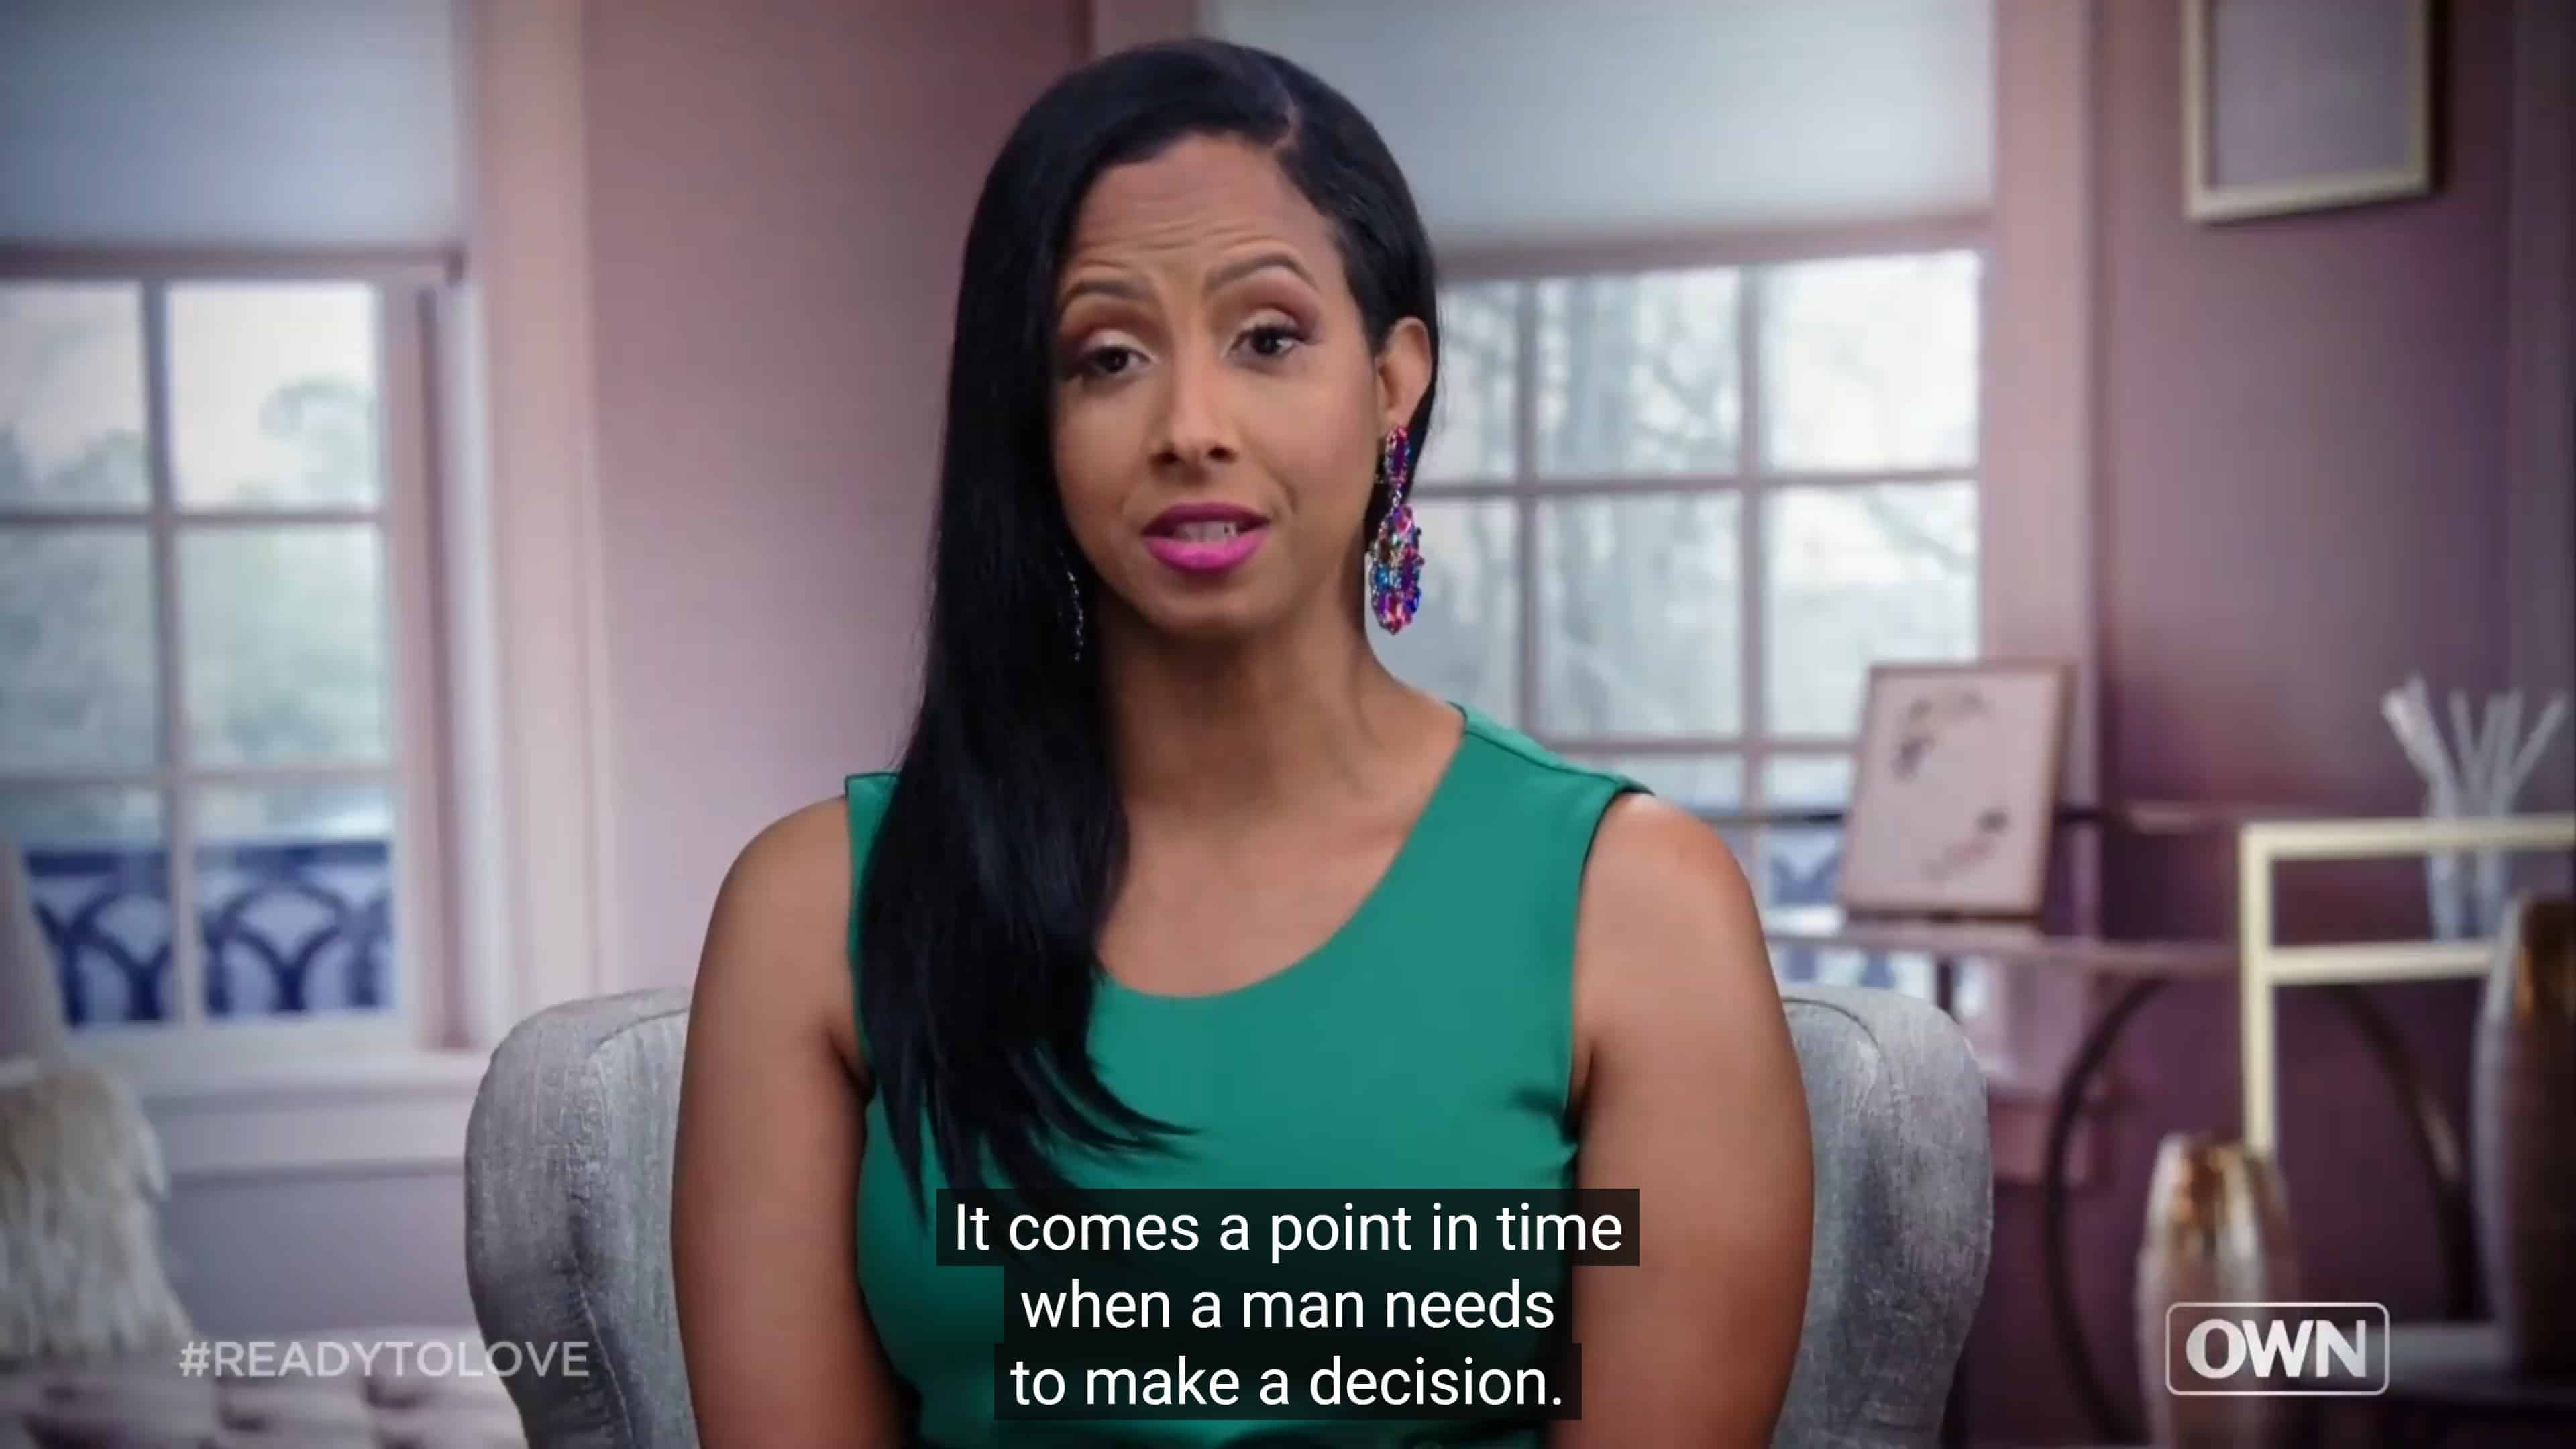 Liz noting there comes a point when a man needs to make a decision